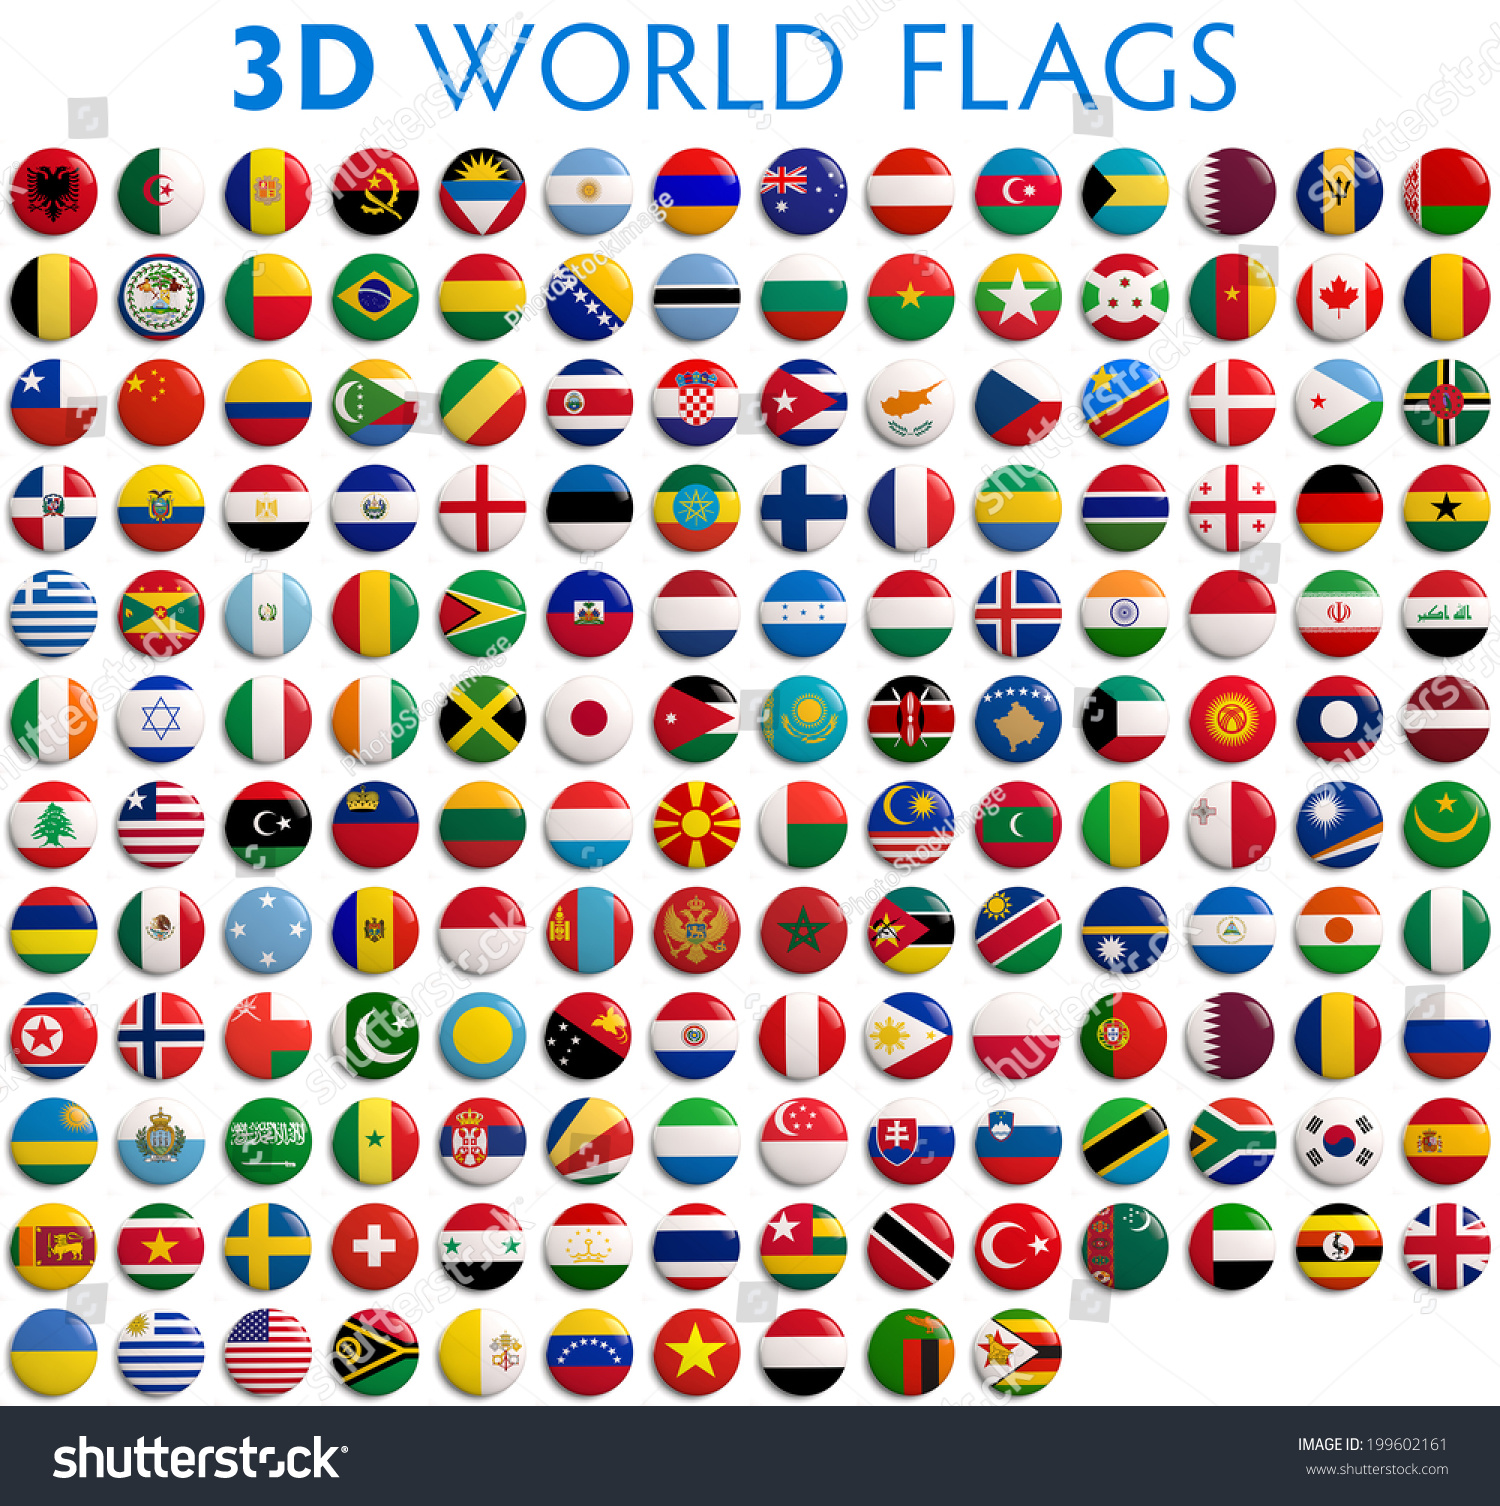 Country Flags World 3d Realistic Stock Illustration 199602161 ...